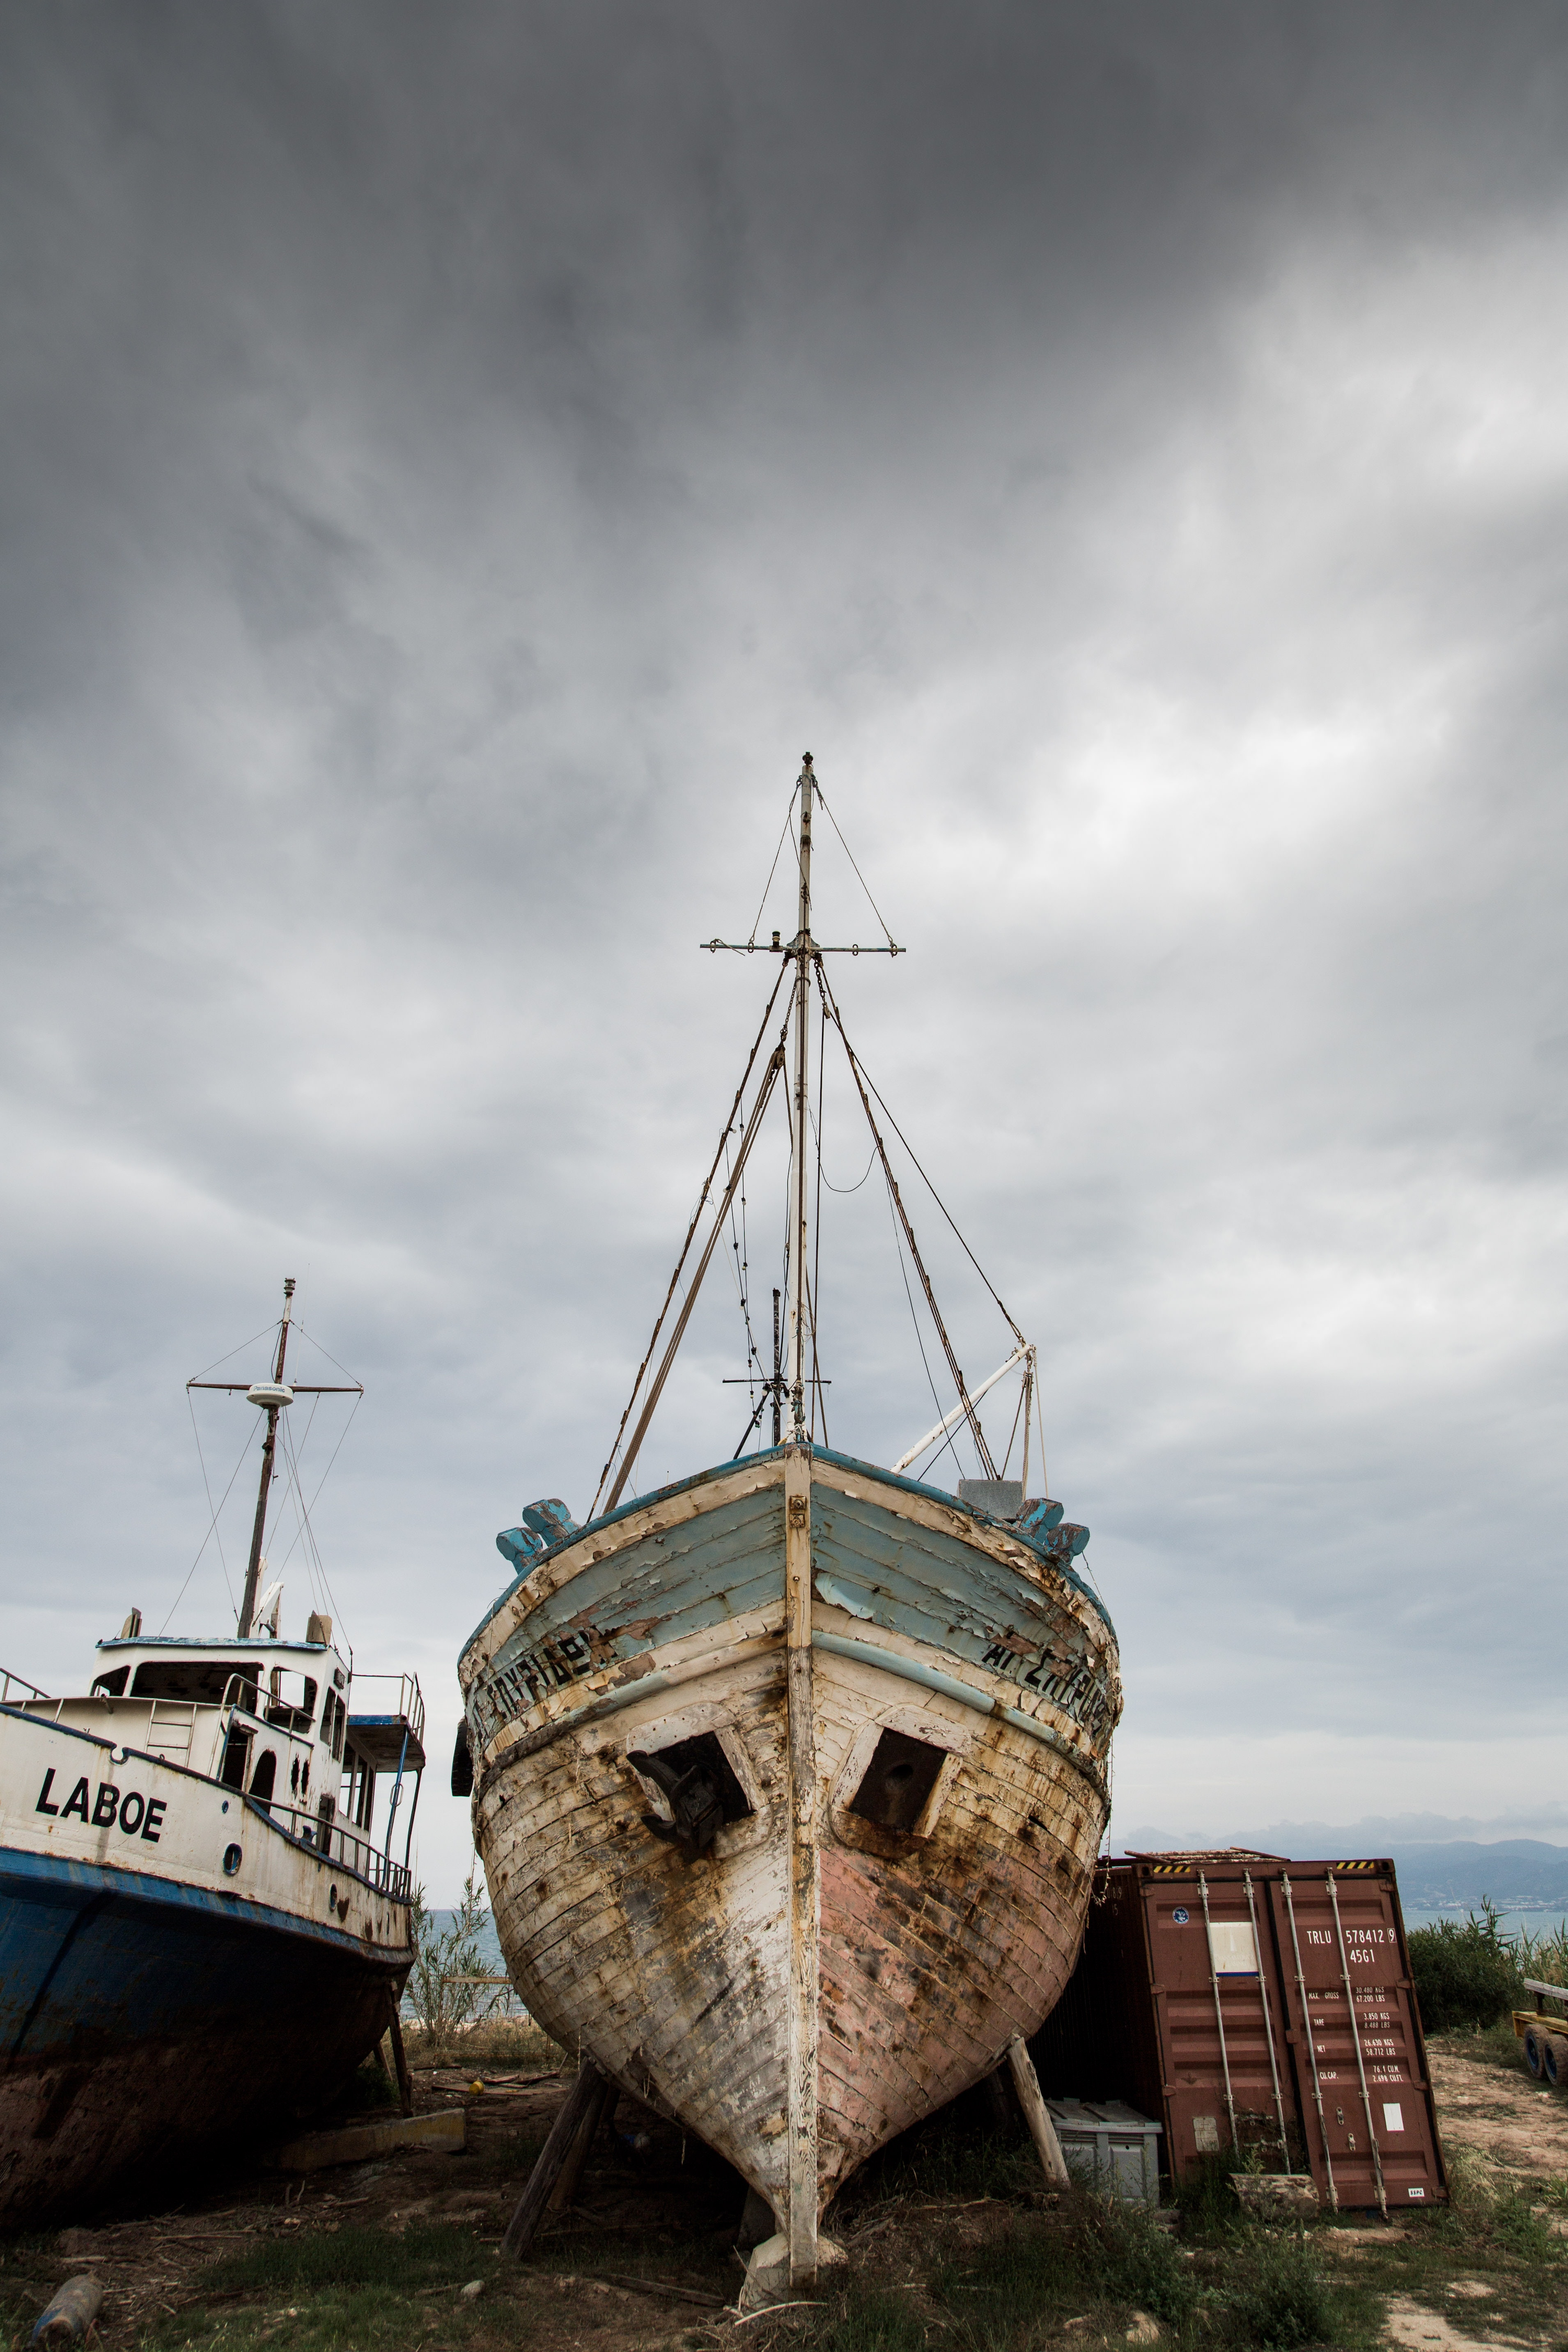 White Blue Boat, Abandoned, Rust, Wooden, Vintage, HQ Photo